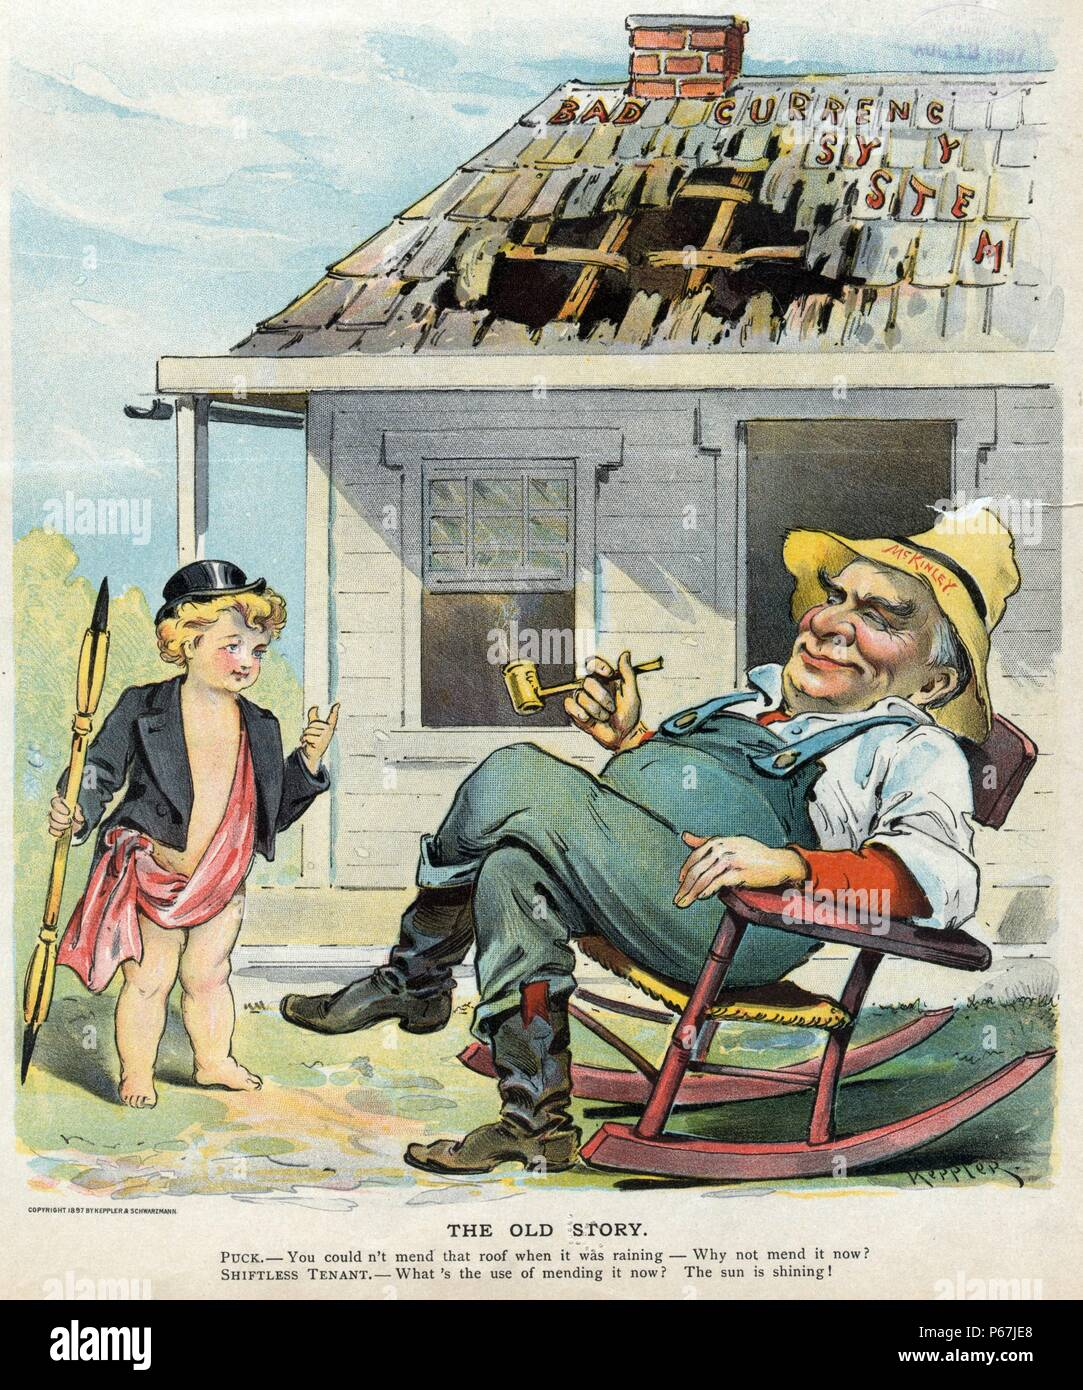 The old story' Puck holding a lithographic pen, talking to President William McKinley (1843-1901) as a 'shiftless tenant' sitting in a rocking chair while the roof labelled 'Bad Currency System' on his house deteriorates, creating a large hole. - Stock Image